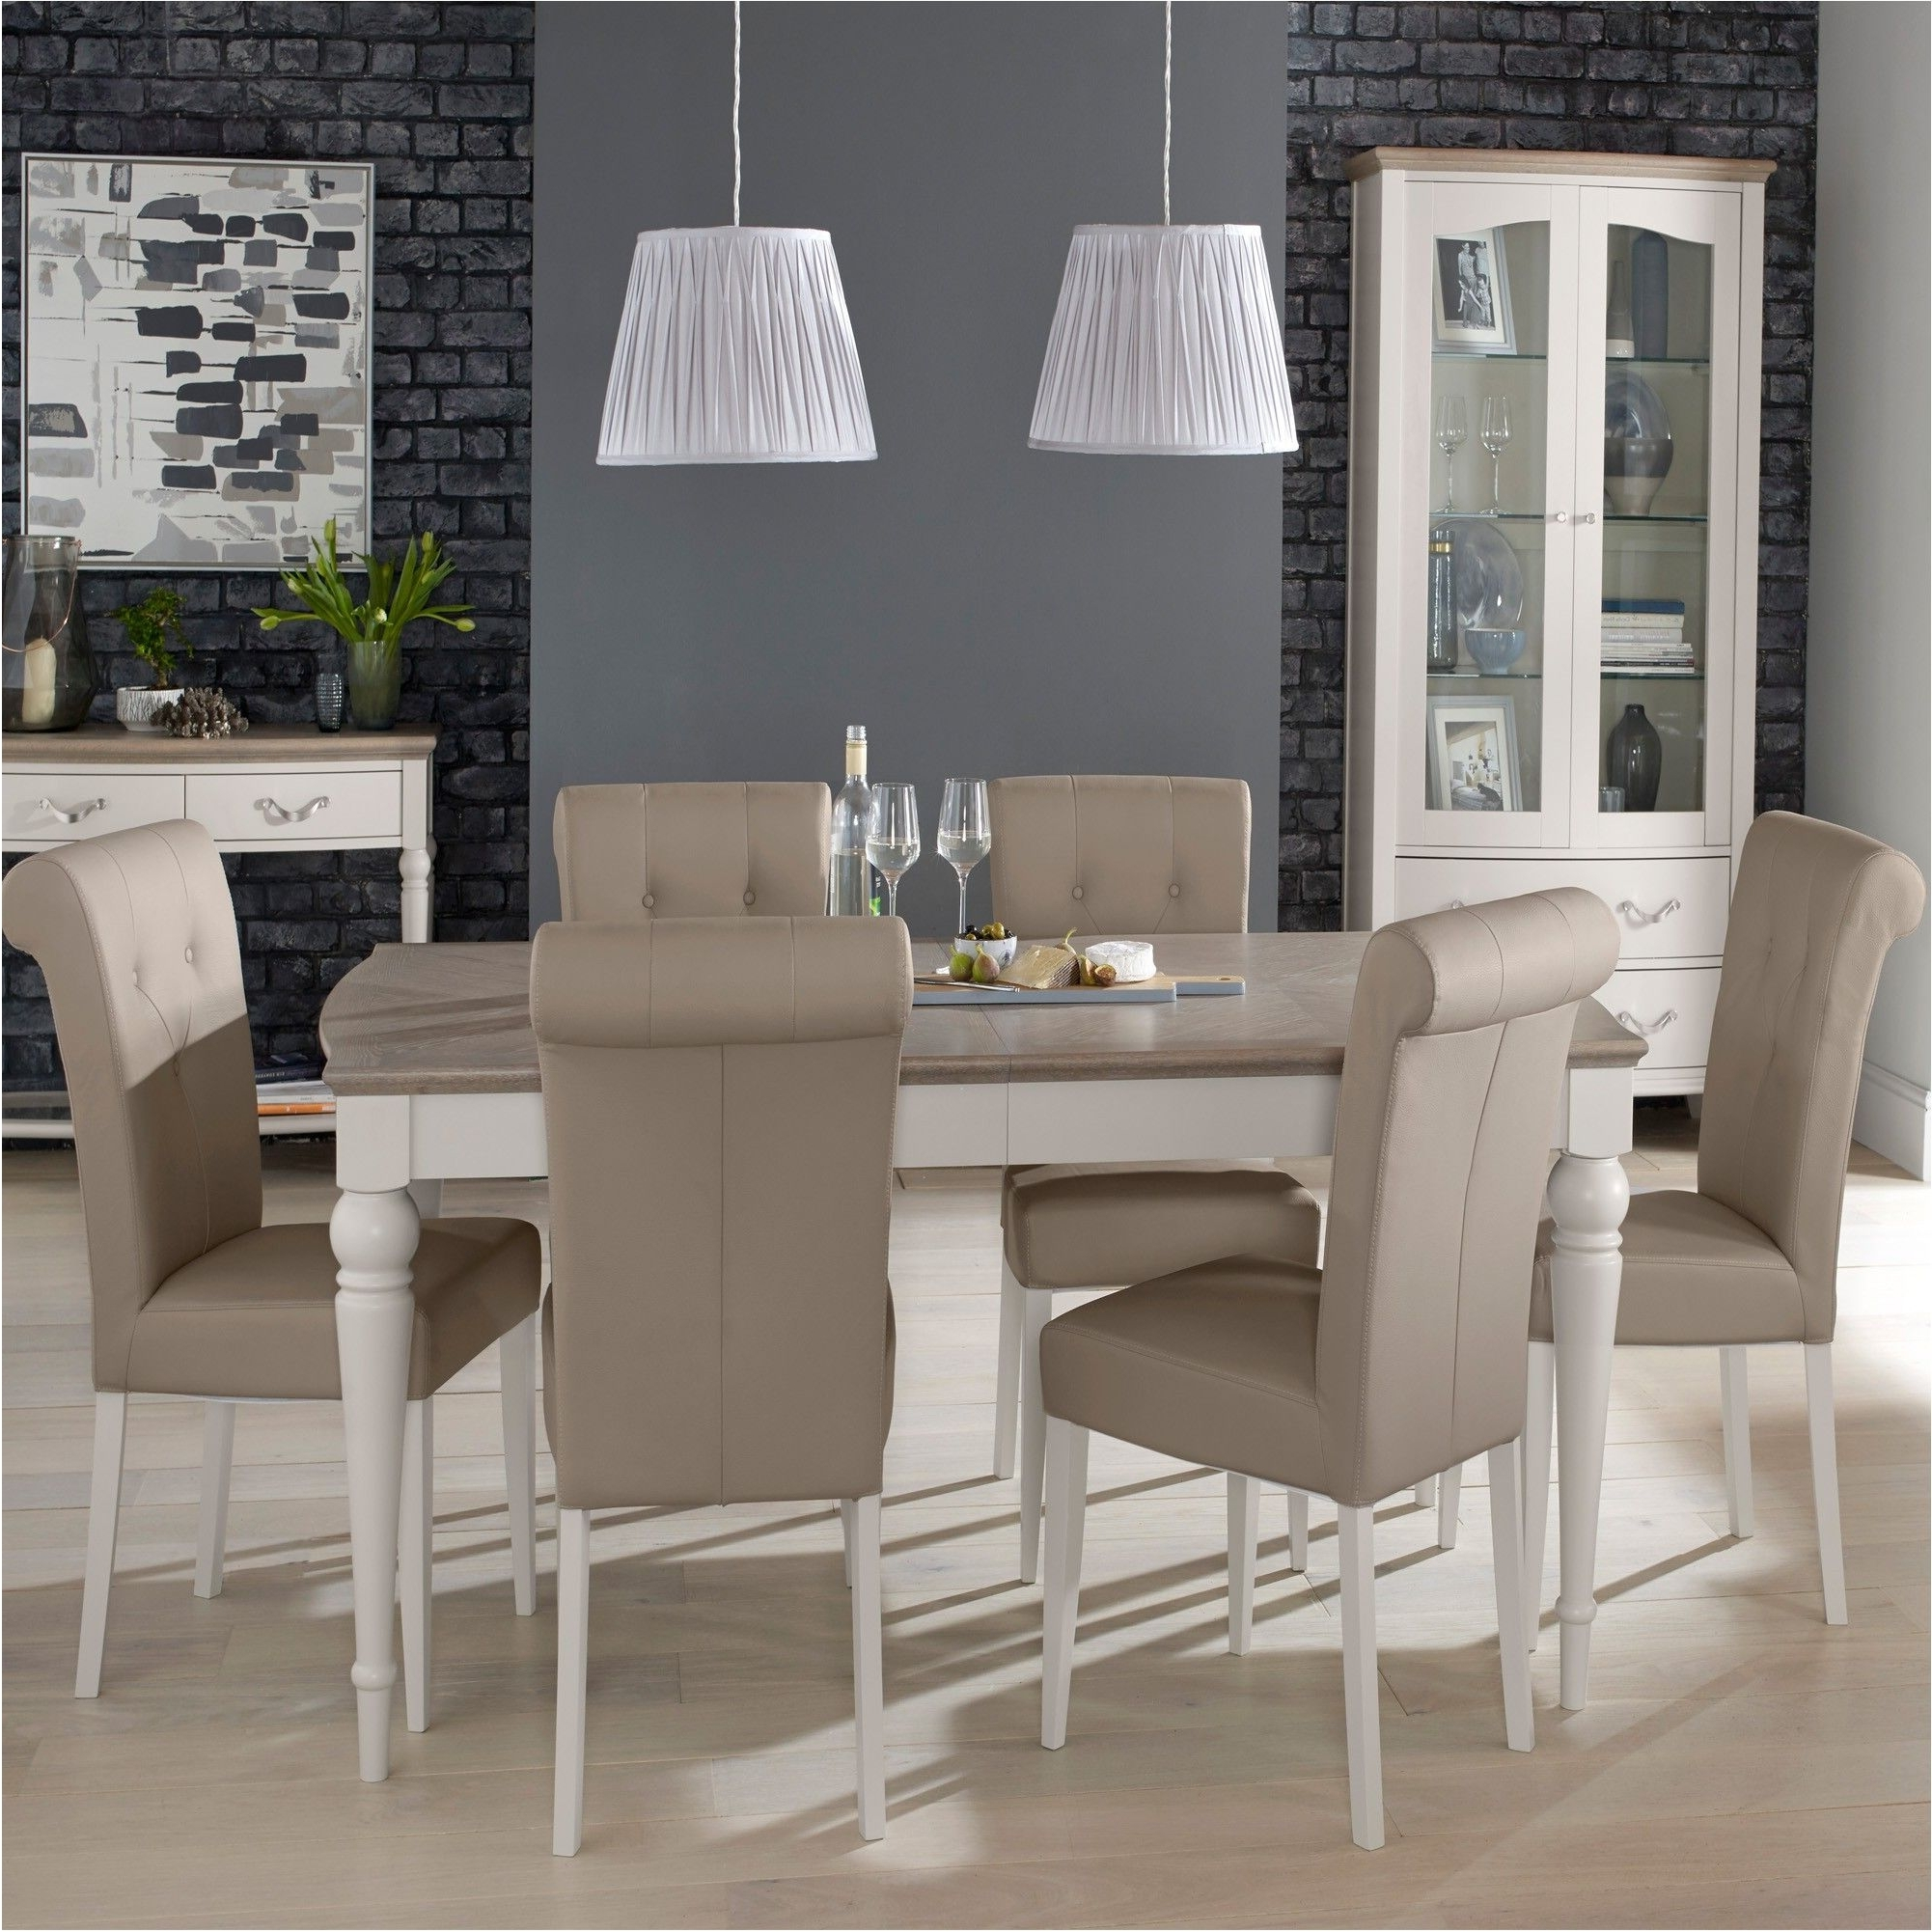 Terrific 3 Steps To Pick The Ultimate Dining Table And 6 Chairs Set In Most Recently Released Dining Tables And 6 Chairs (View 22 of 25)